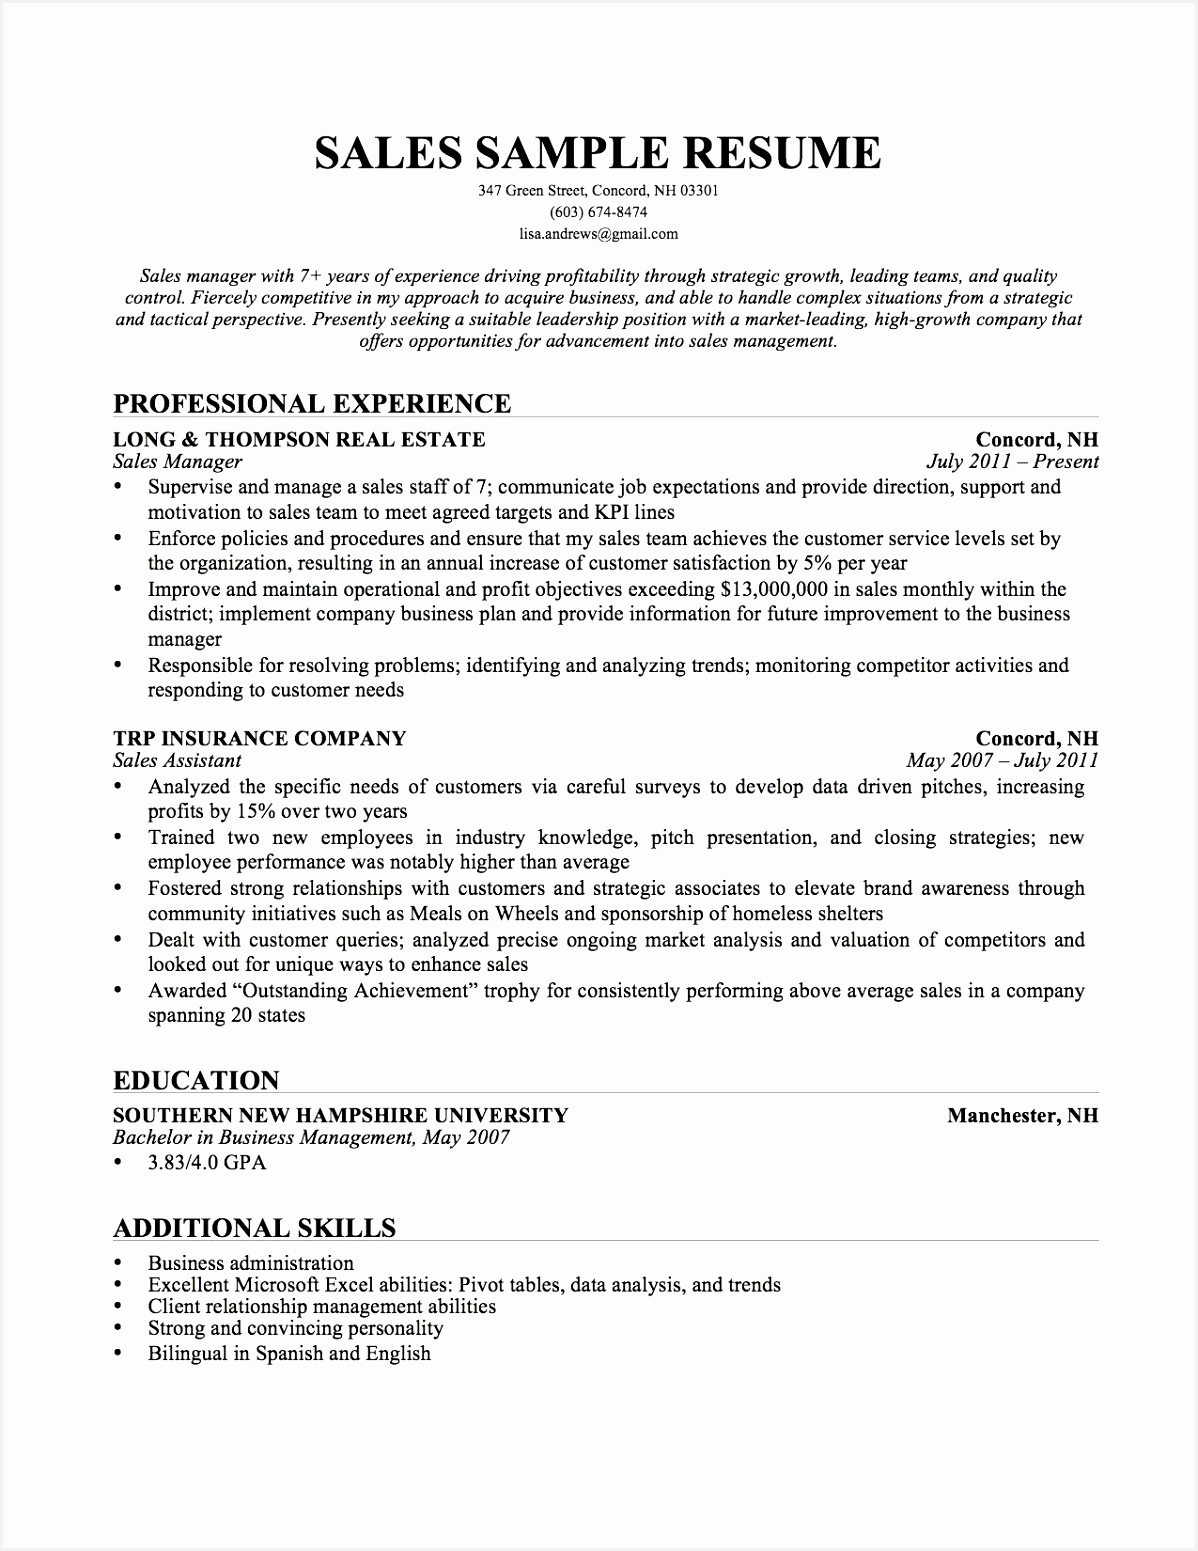 Resume for Cna with Experience Free Cna Resume Examples Elegant Rn Bsn Resume Awesome Nurse Resume 155111988gmhs